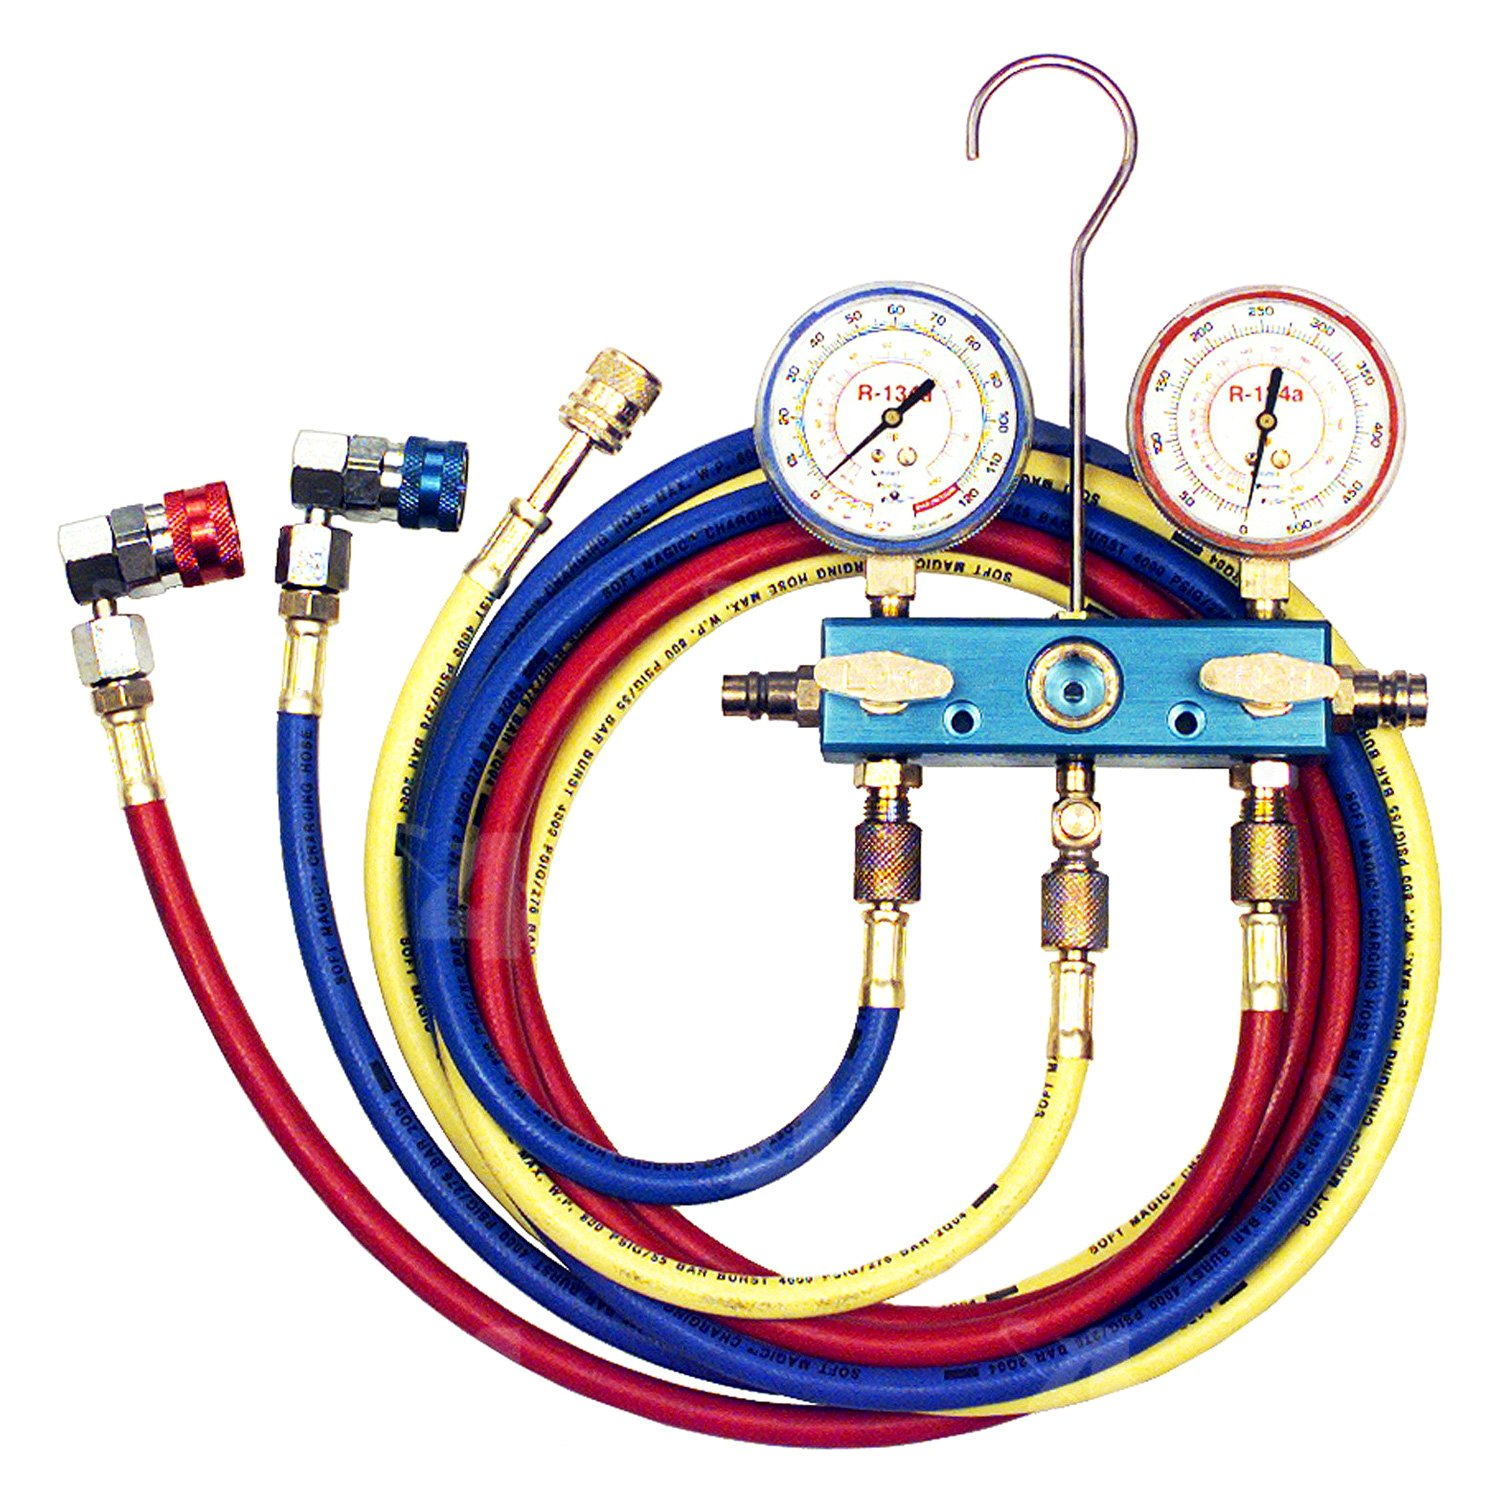 r134a manifold gauge set instructions